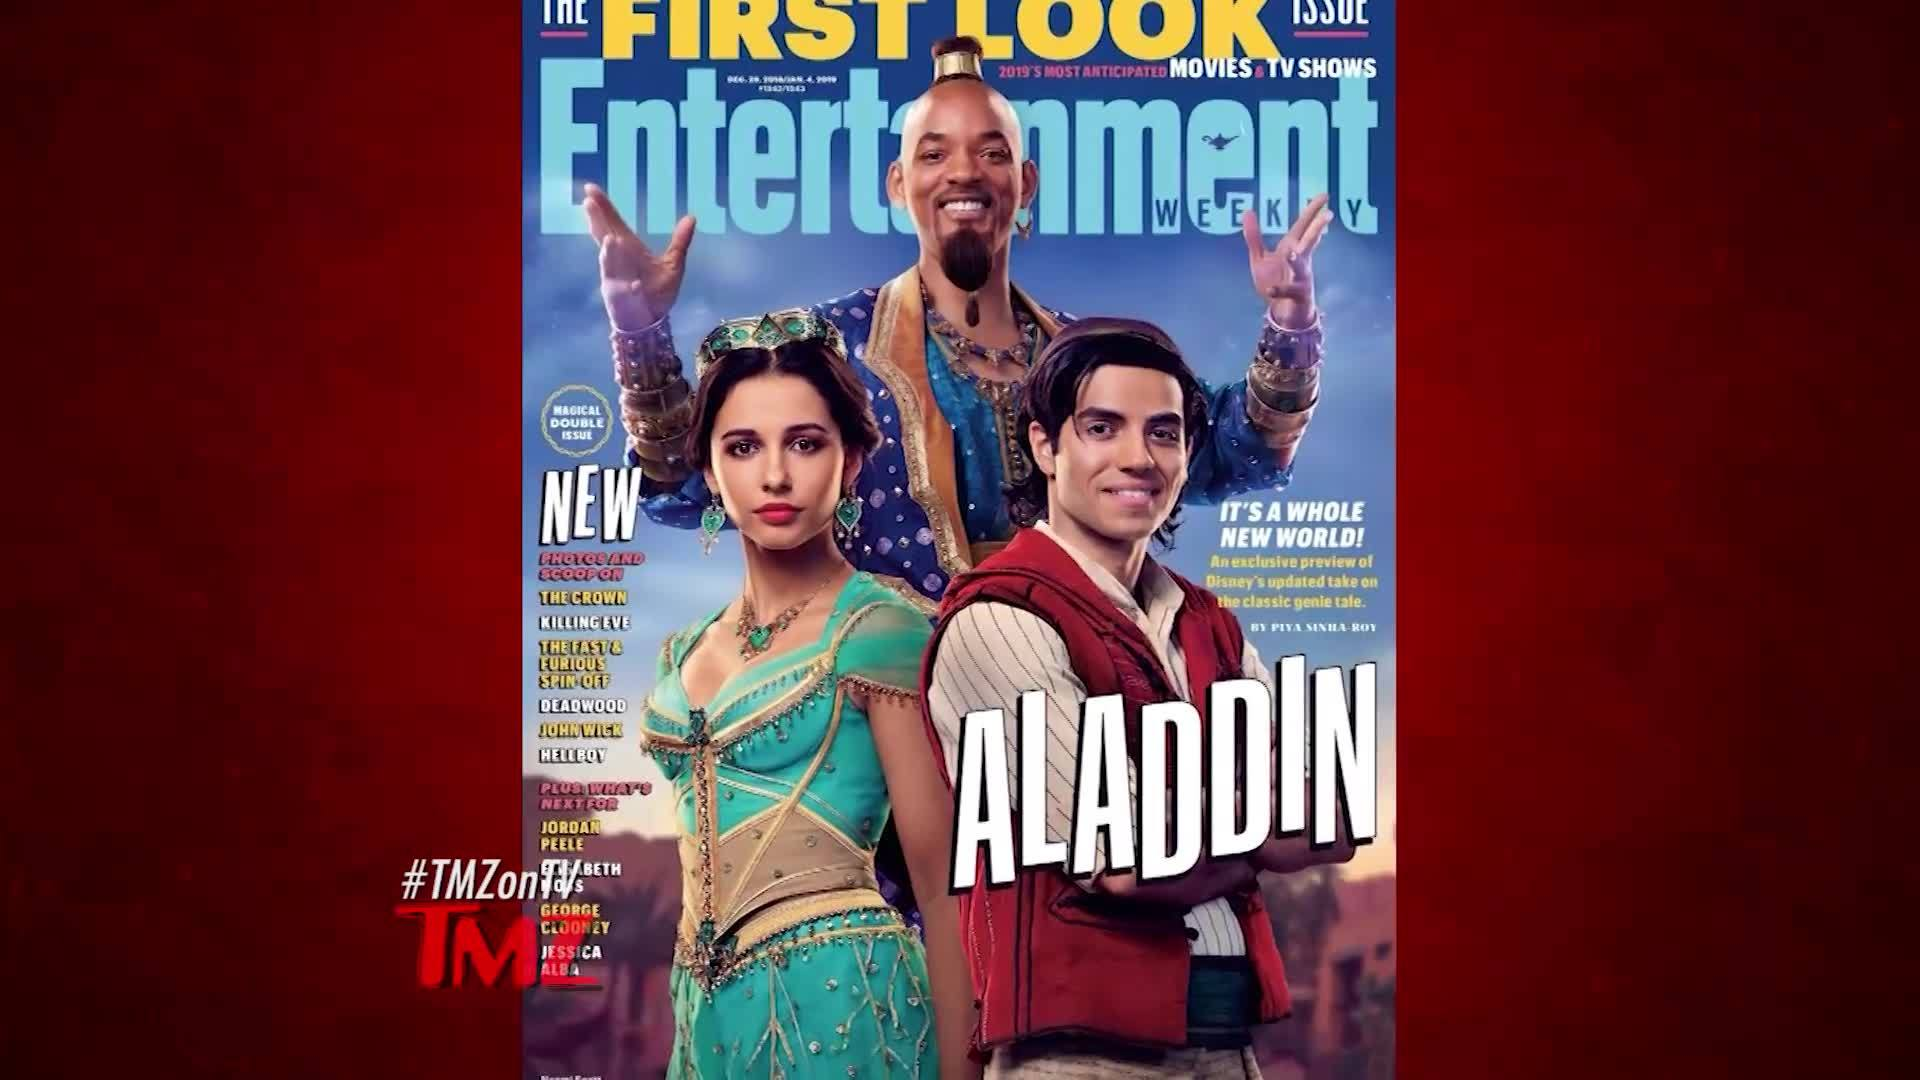 The first pictures of the new Aladdin movie have been released. According to TMZ, people aren't exactly... jazzed.